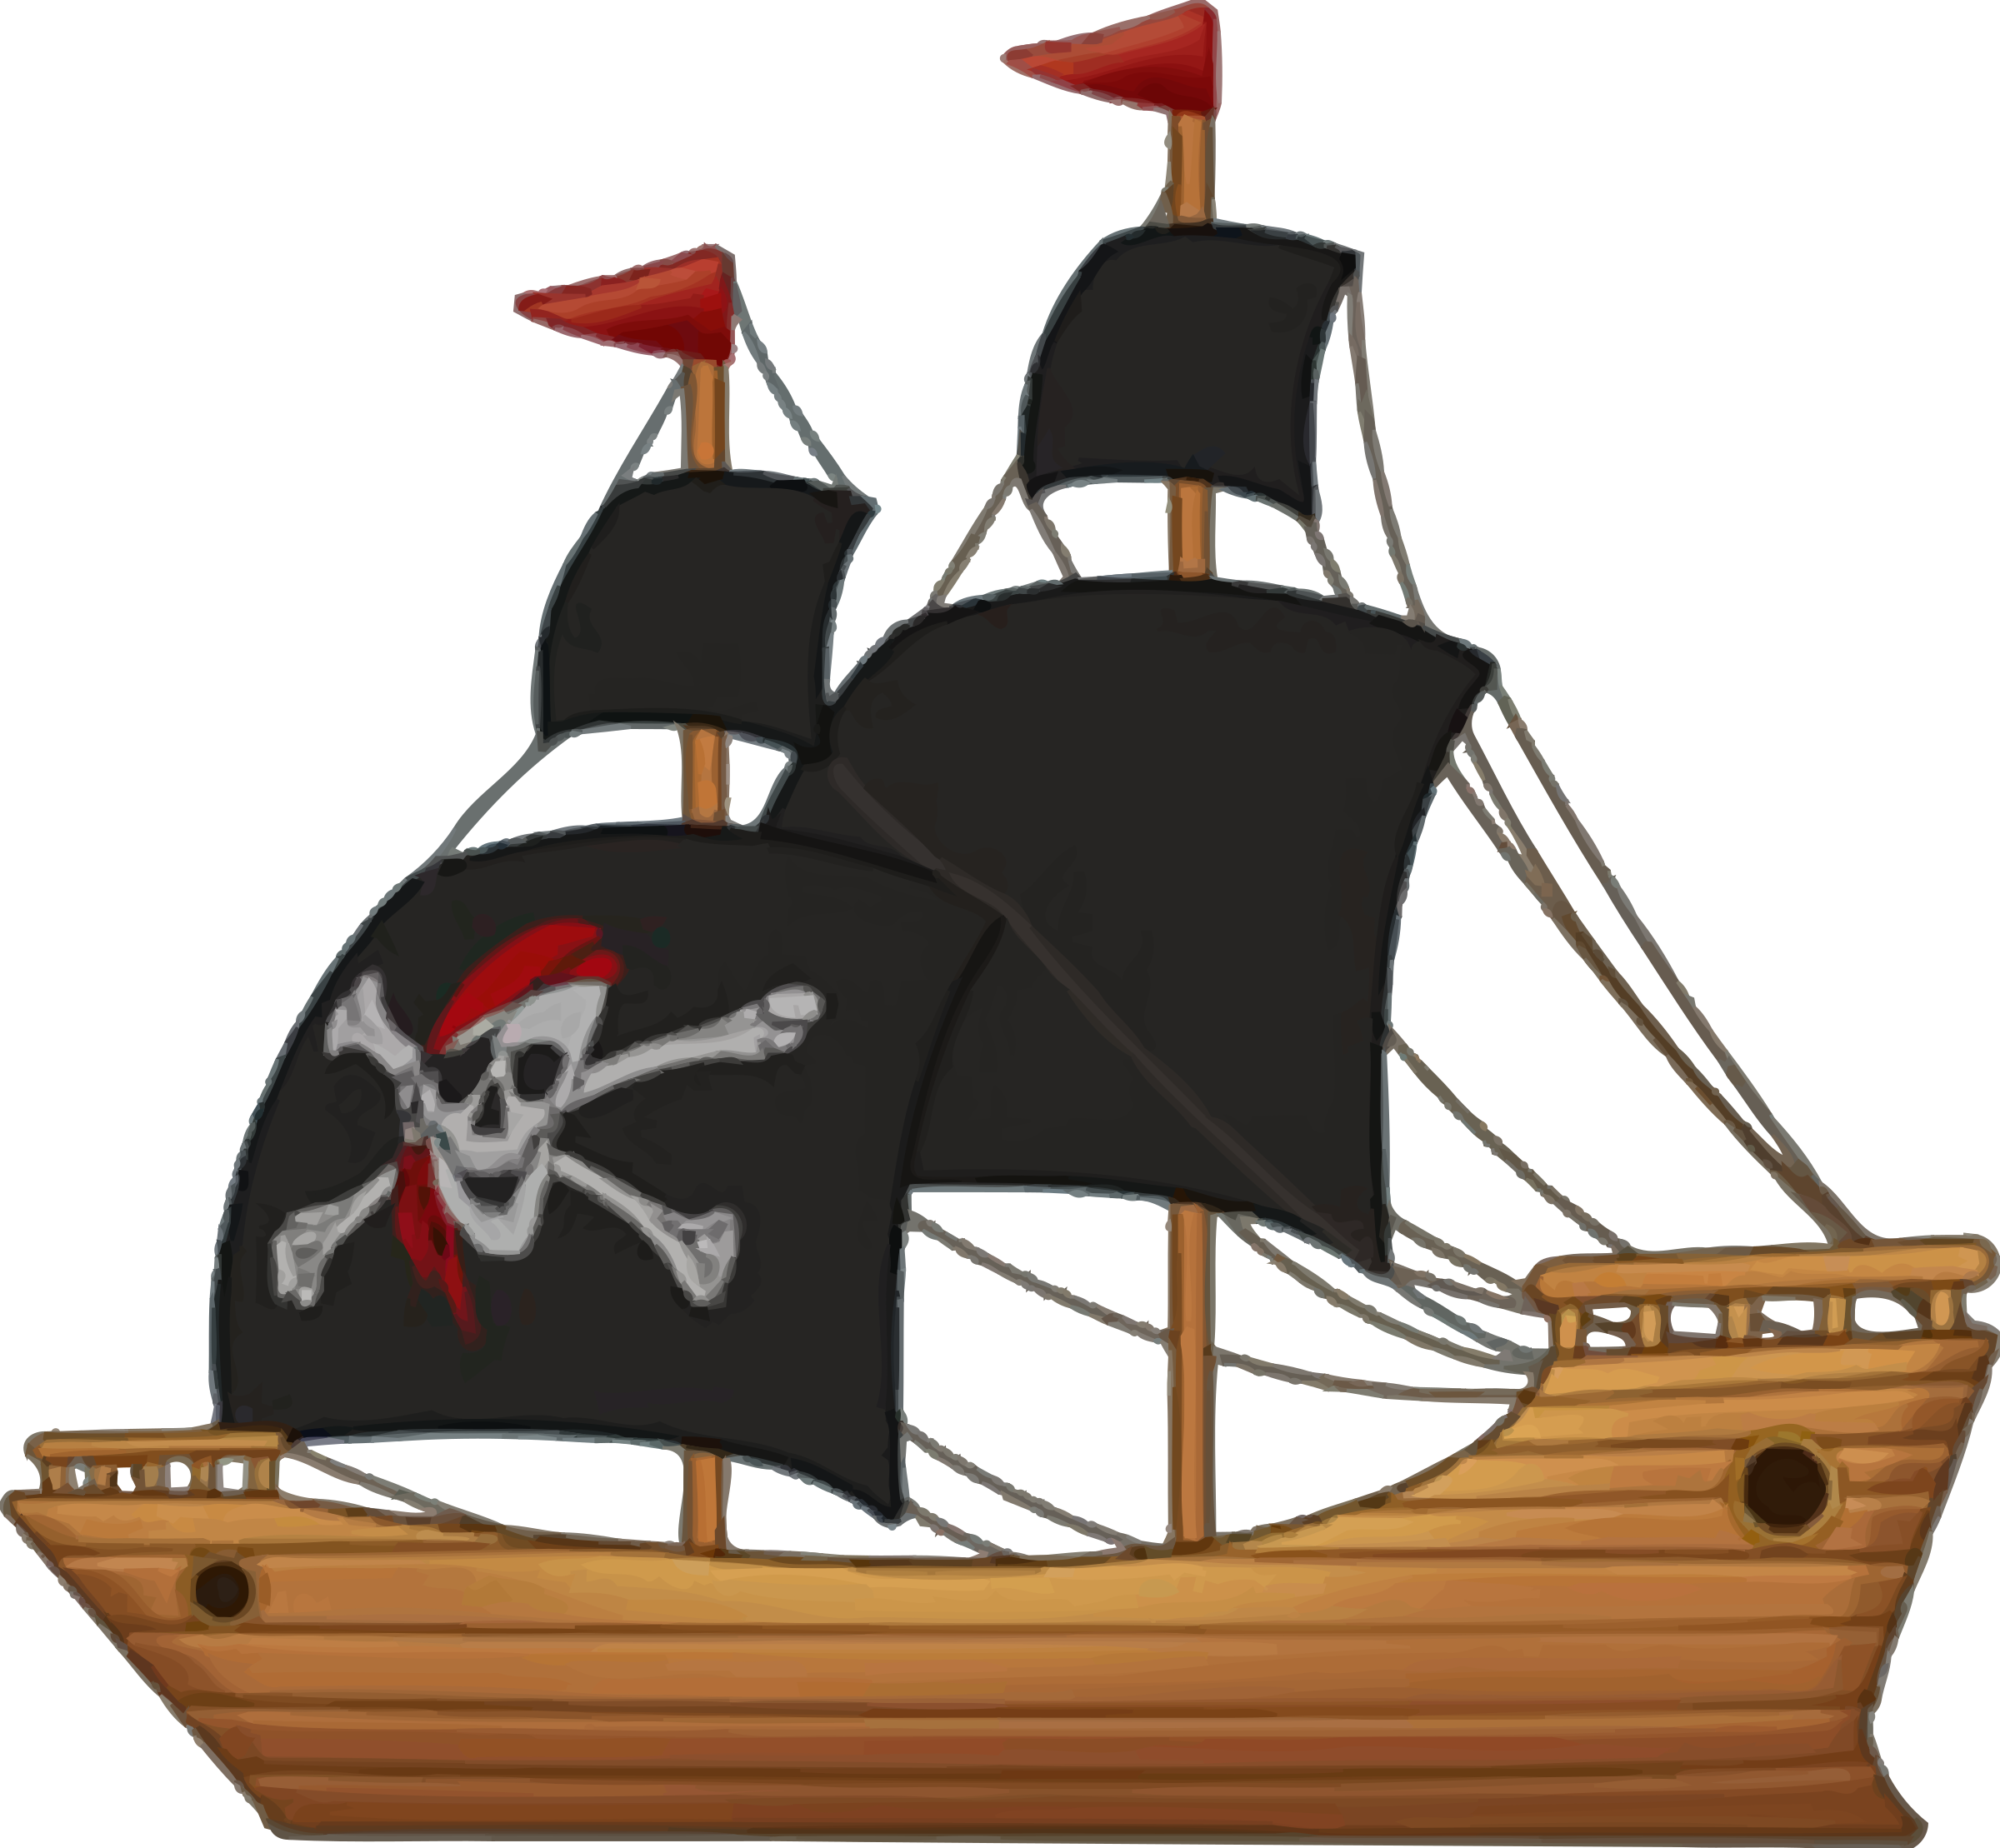 Clipart boat person. Pirate ship by firkin